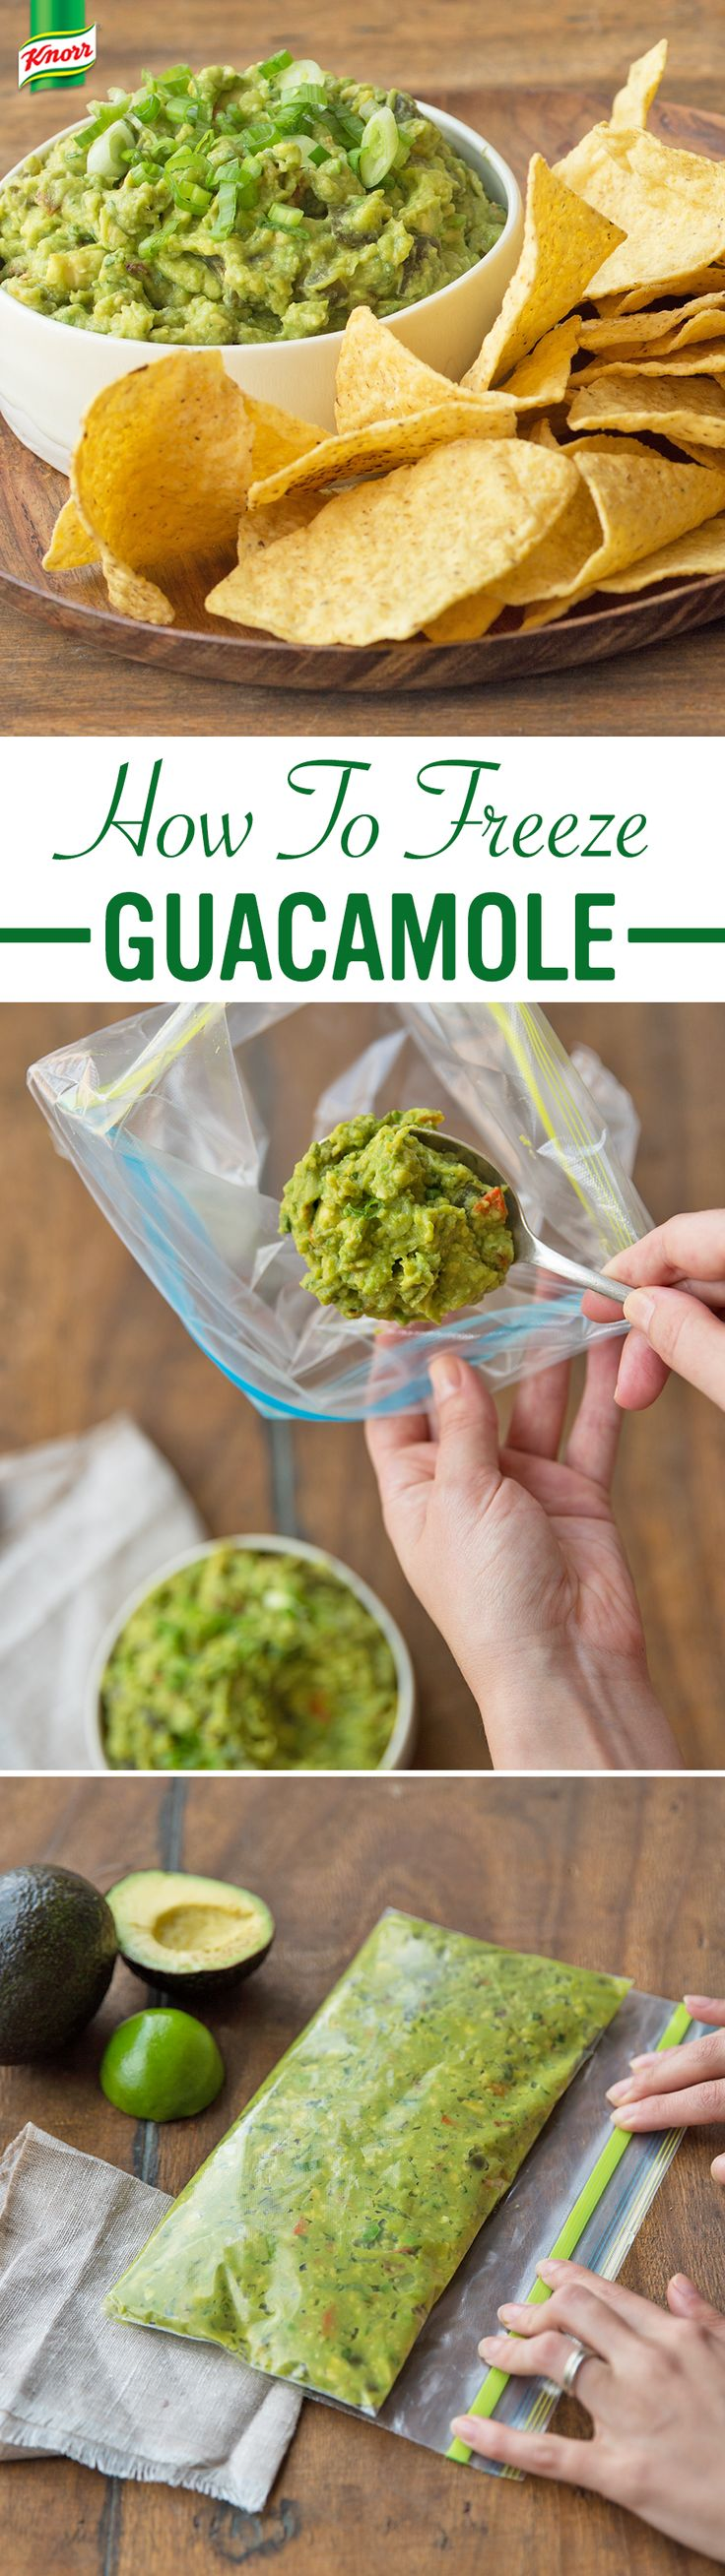 How to make freezer-guac for instant munchies?  1. Combine medium mashed avocados, a cup of coarsely chopped canned jalapeno peppers, tablespoons of fresh cilantro, lime juice, and a package of Knorr® Vegetable recipe mix in a small bowl 2. Spoon dip into a plastic bag, seal, and put in the freezer  3. Unfreeze, garnish with green onion, and serve with tortilla chips, your favorite dippers, or as a topping.